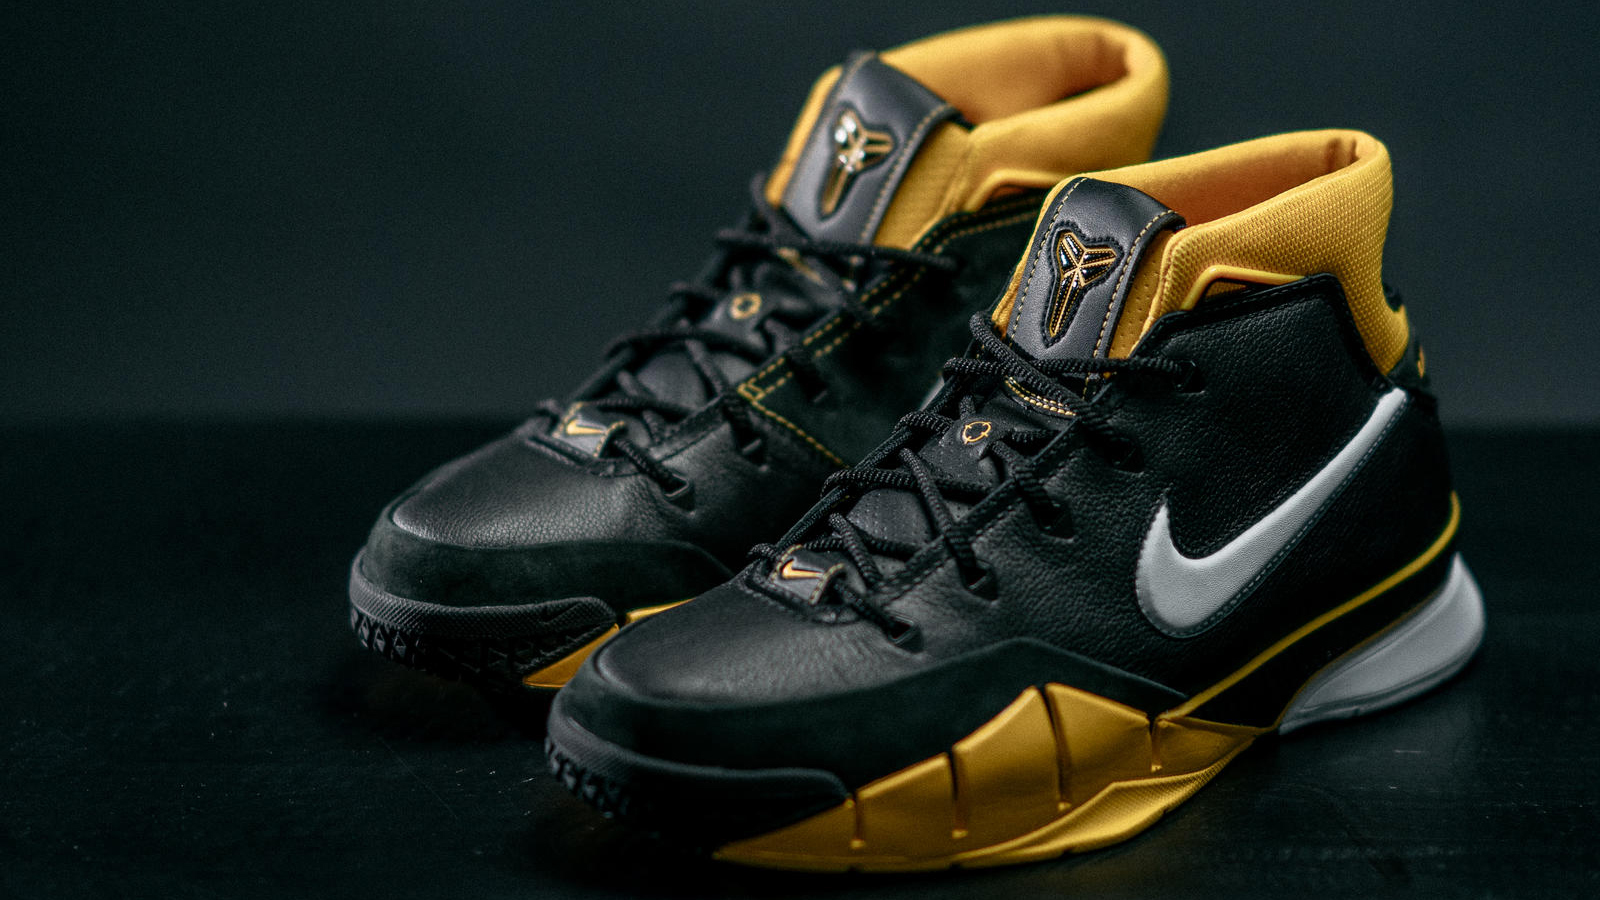 a1e40febd6c1 Kobe Bryant wasn t originally on board with retro ing his classic Nike Zoom  Kobe 1